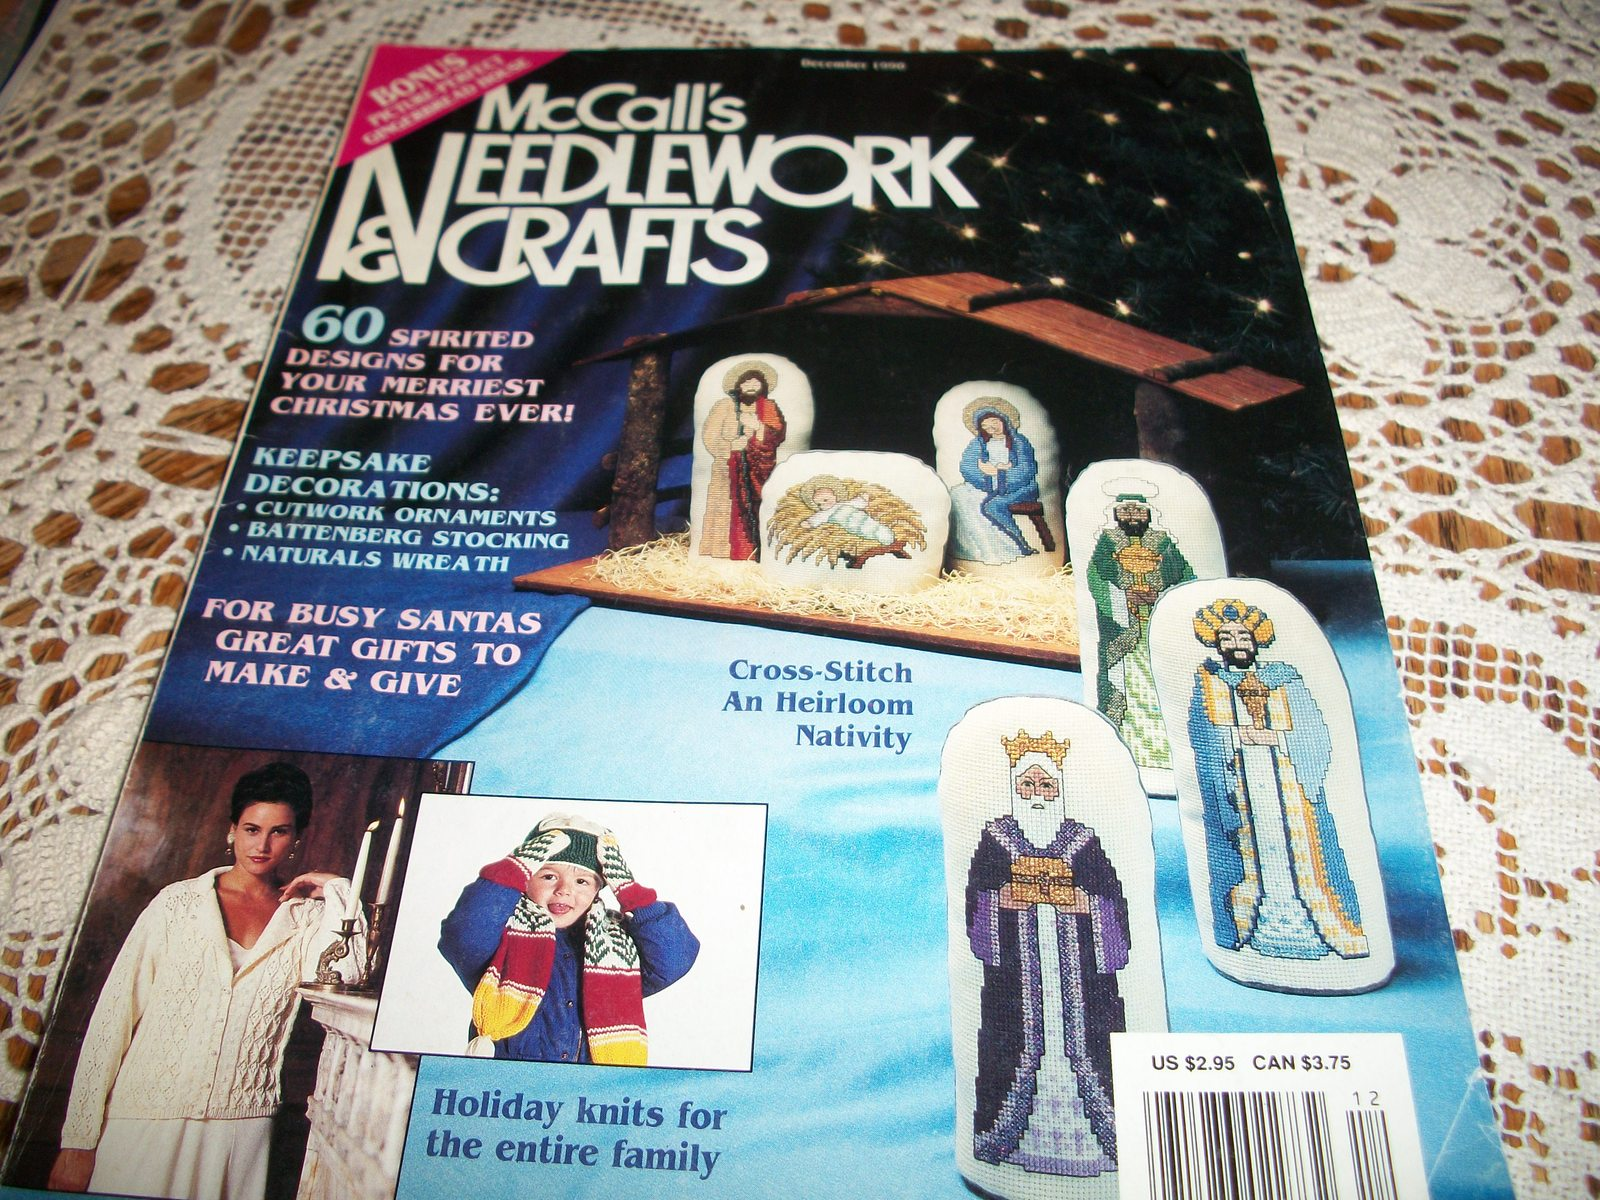 McCall's Needlework & Crafts Magazine December 1990 - $18.00